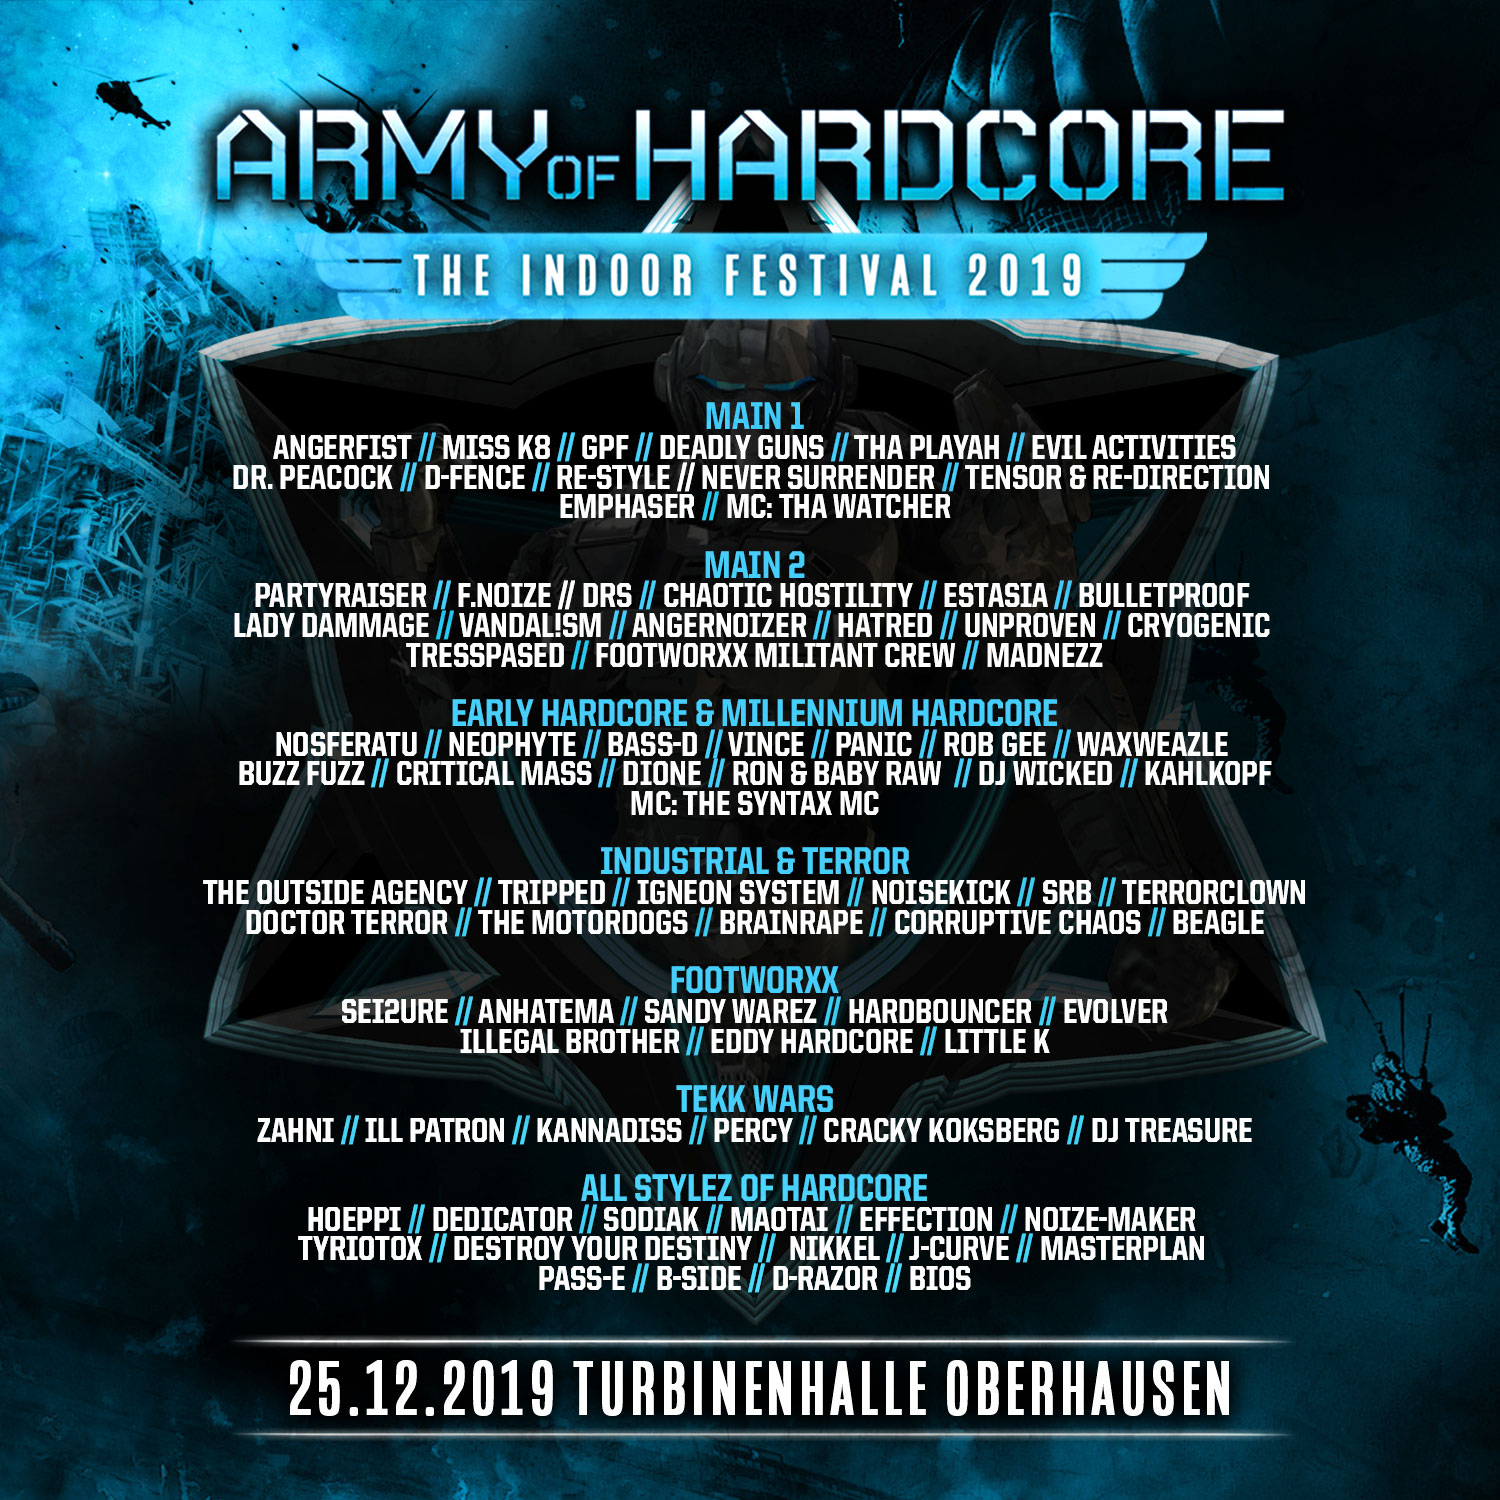 Army of Hardcore 2019